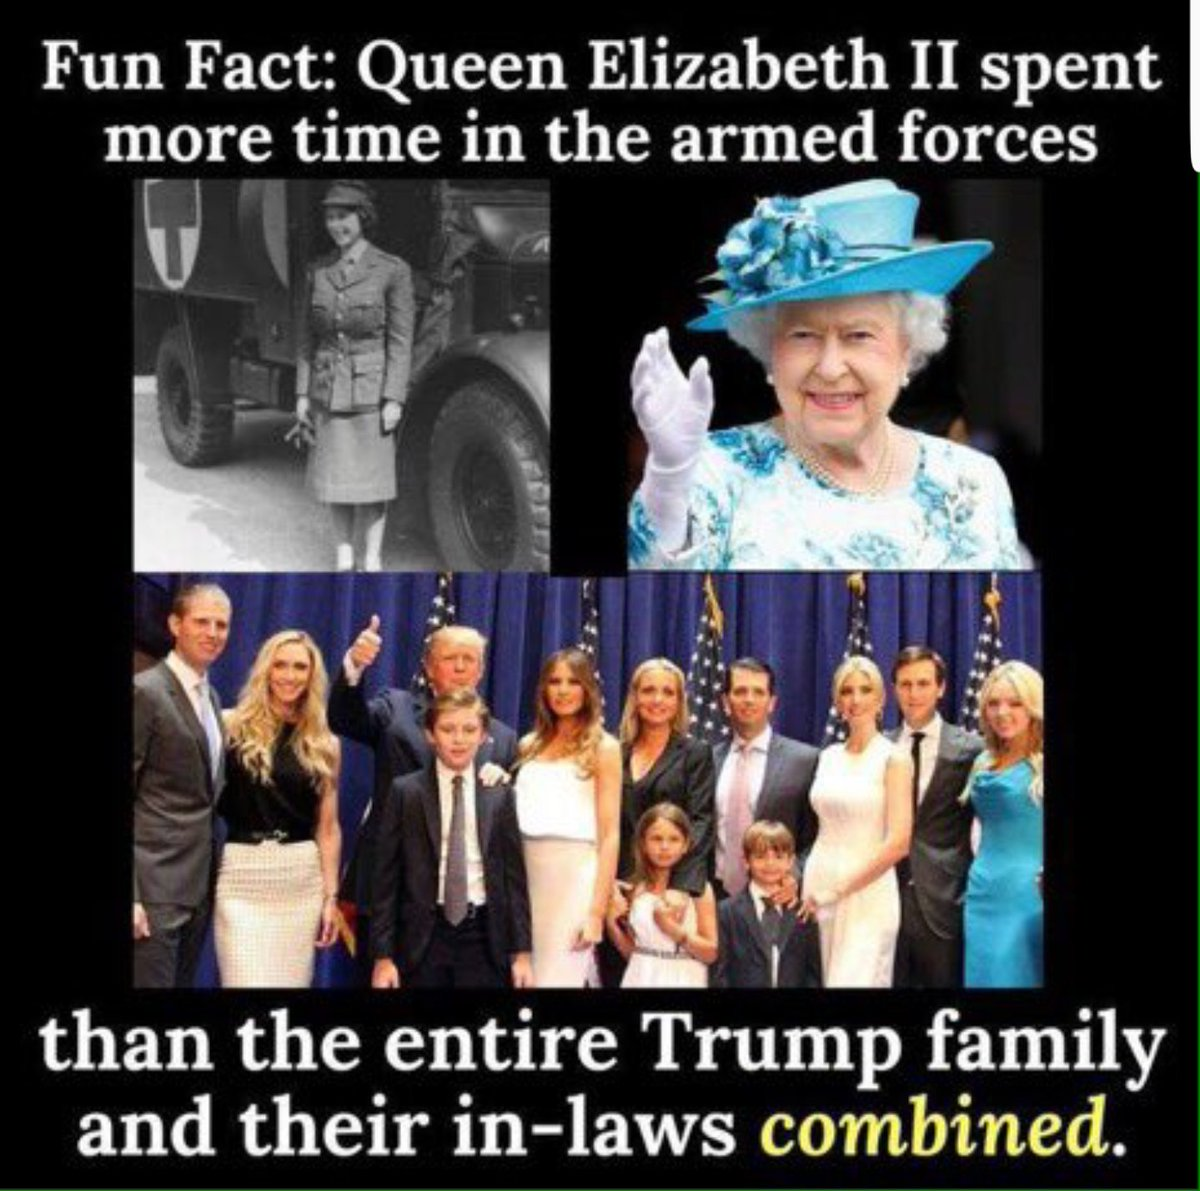 A Little Reminder as @realDonaldTrump &amp; @FLOTUS sit Down to Tea with Queen Elizabeth II.  Maybe Queen Elizabeth can Give *45 a few Pointers on what True Patriotism &amp; Service to One&#39;s Country Looks Like.  #TrumpUKVisit #London<br>http://pic.twitter.com/ge7BijBYOc